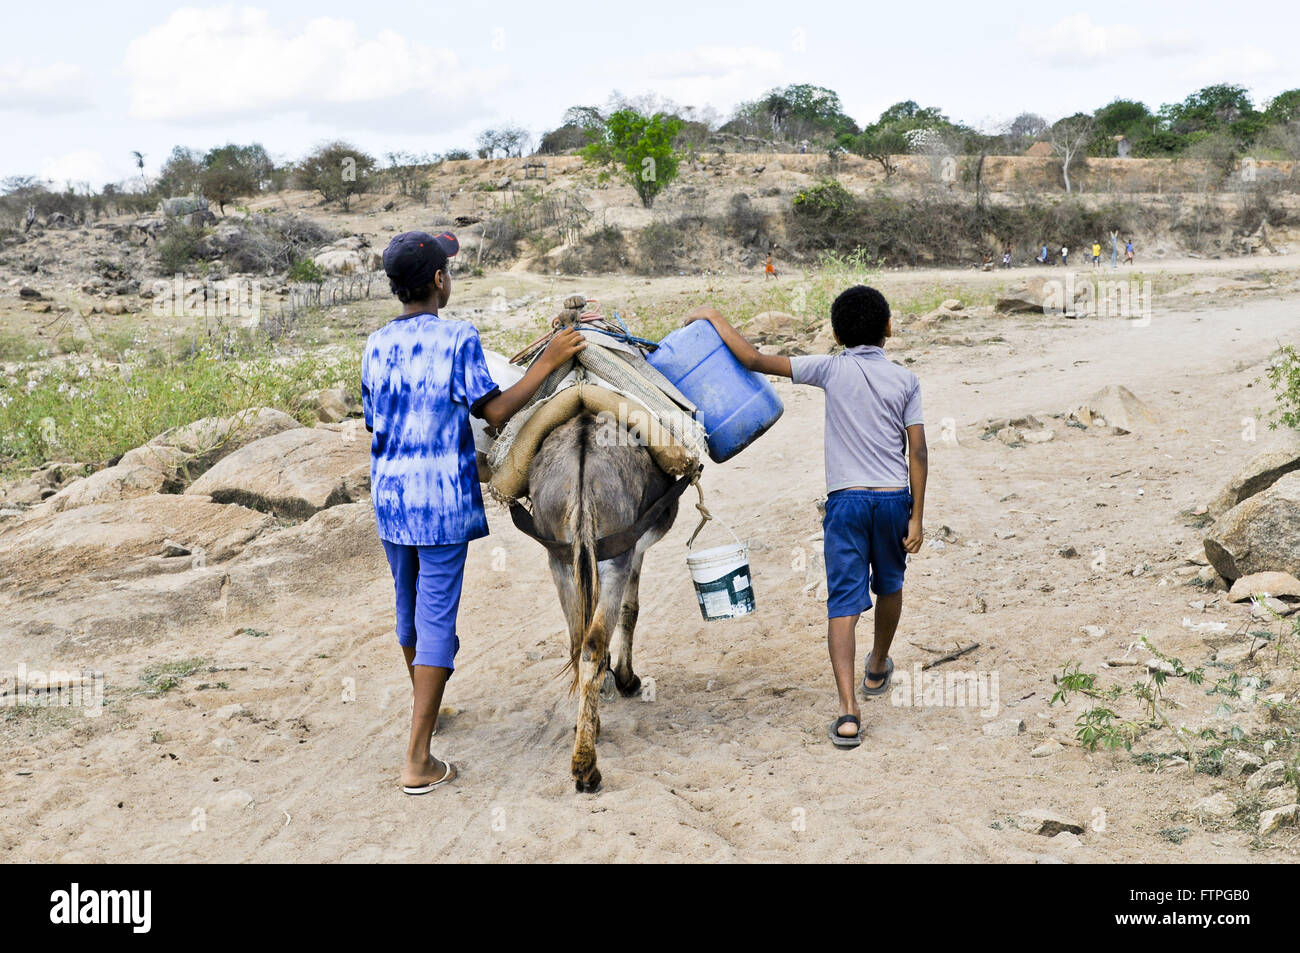 Children carrying water on donkey in rural town in Mulungu Stock Photo